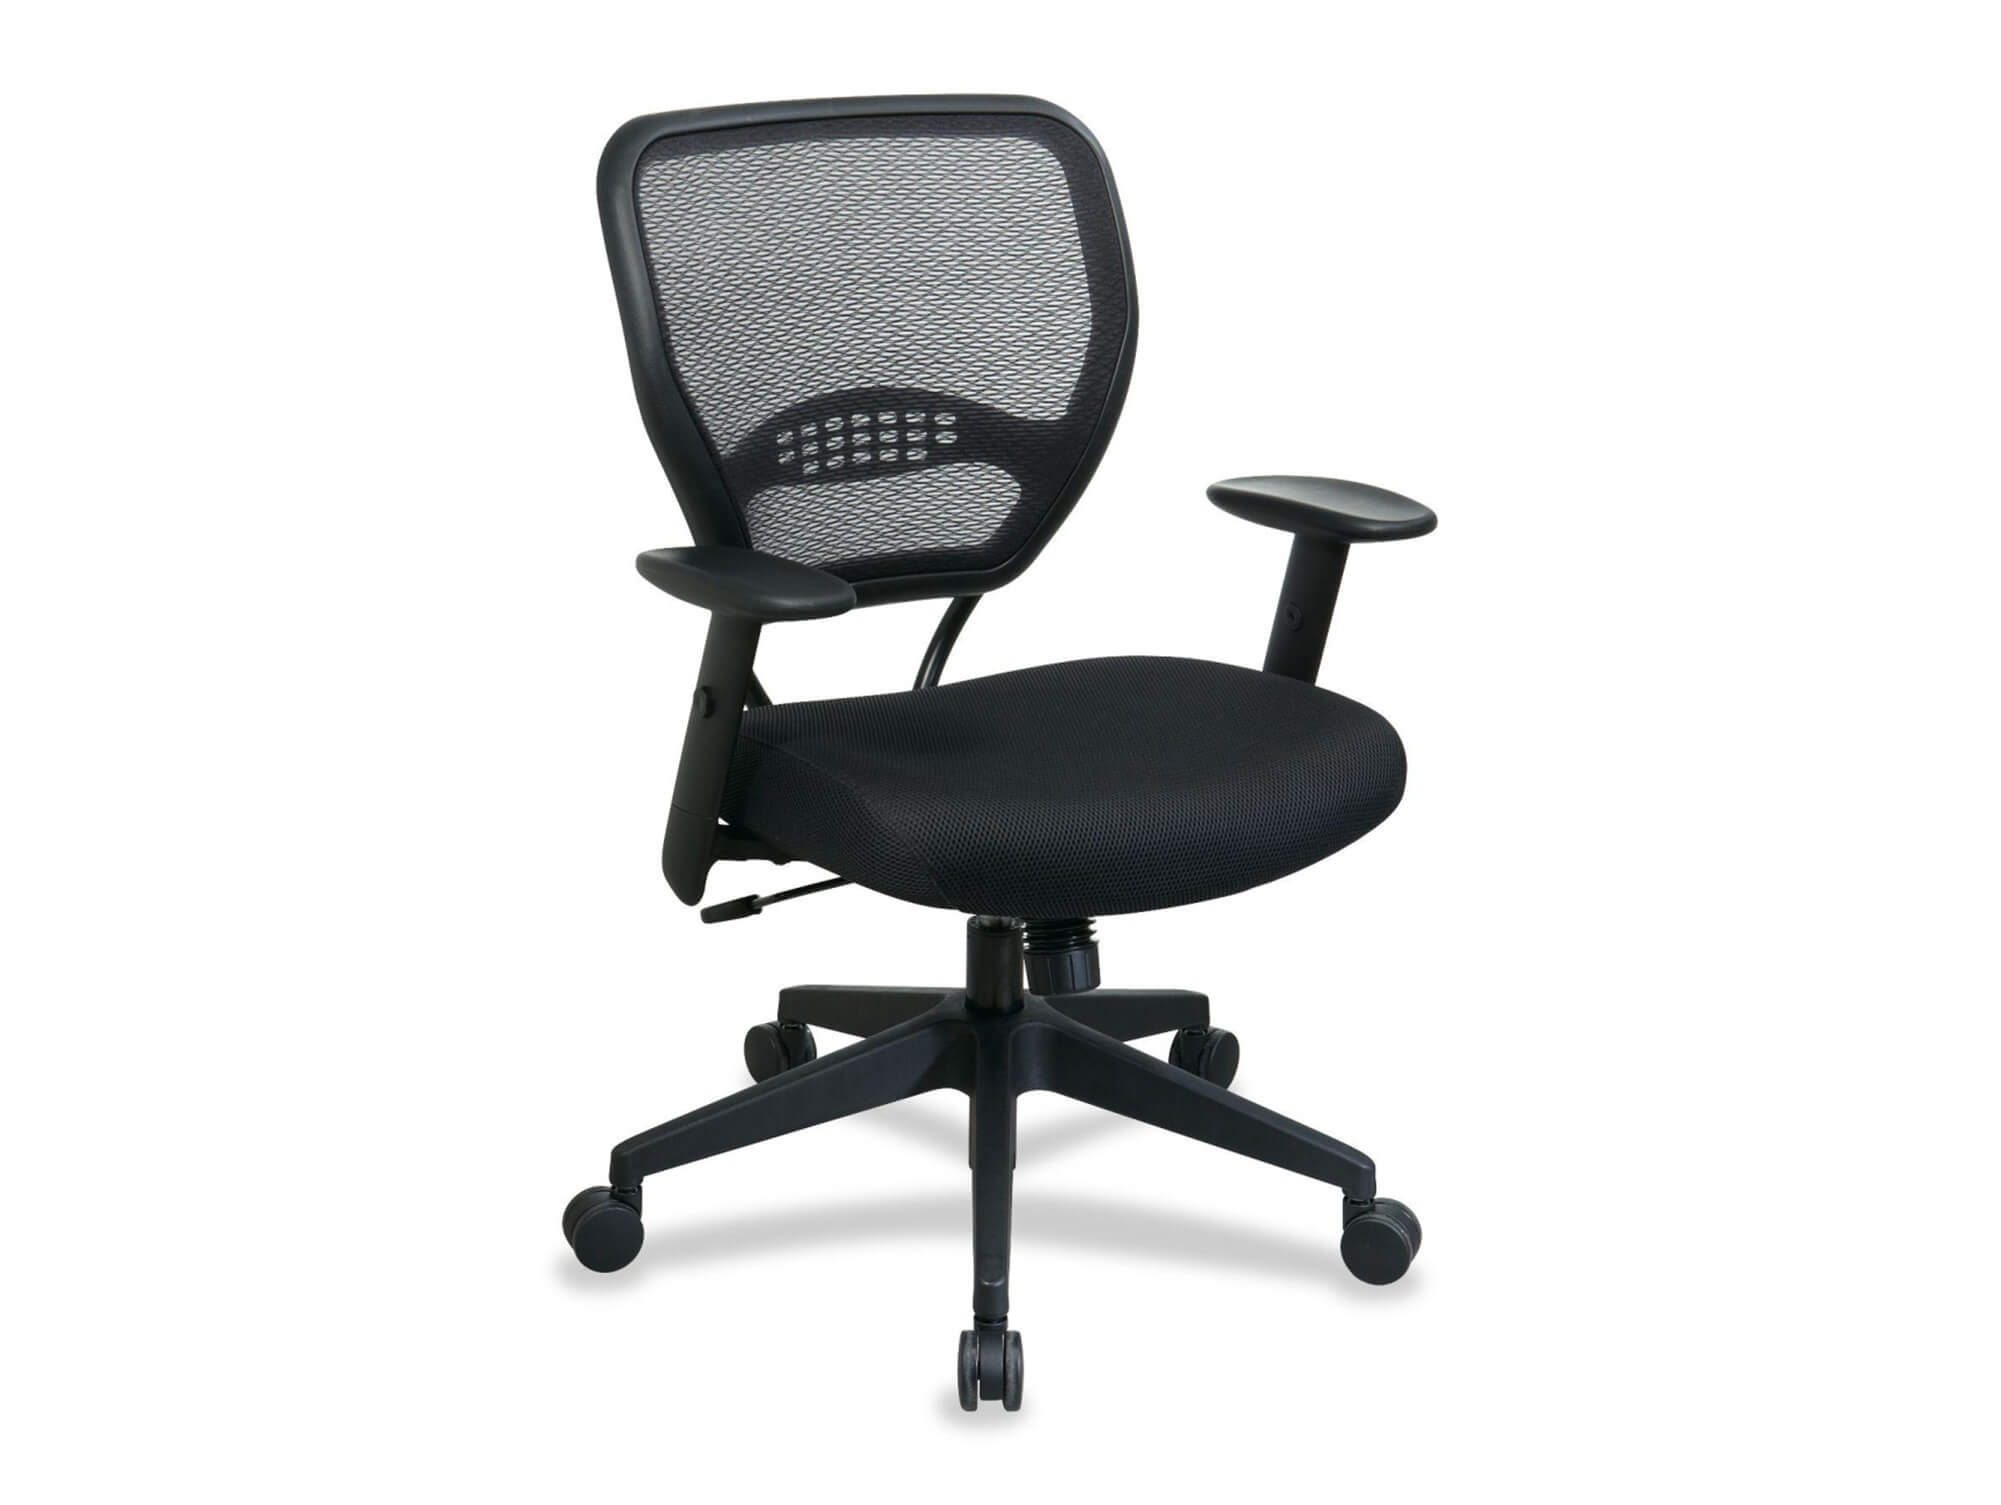 chairs-for-office-best-ergonomic-chairs.jpg